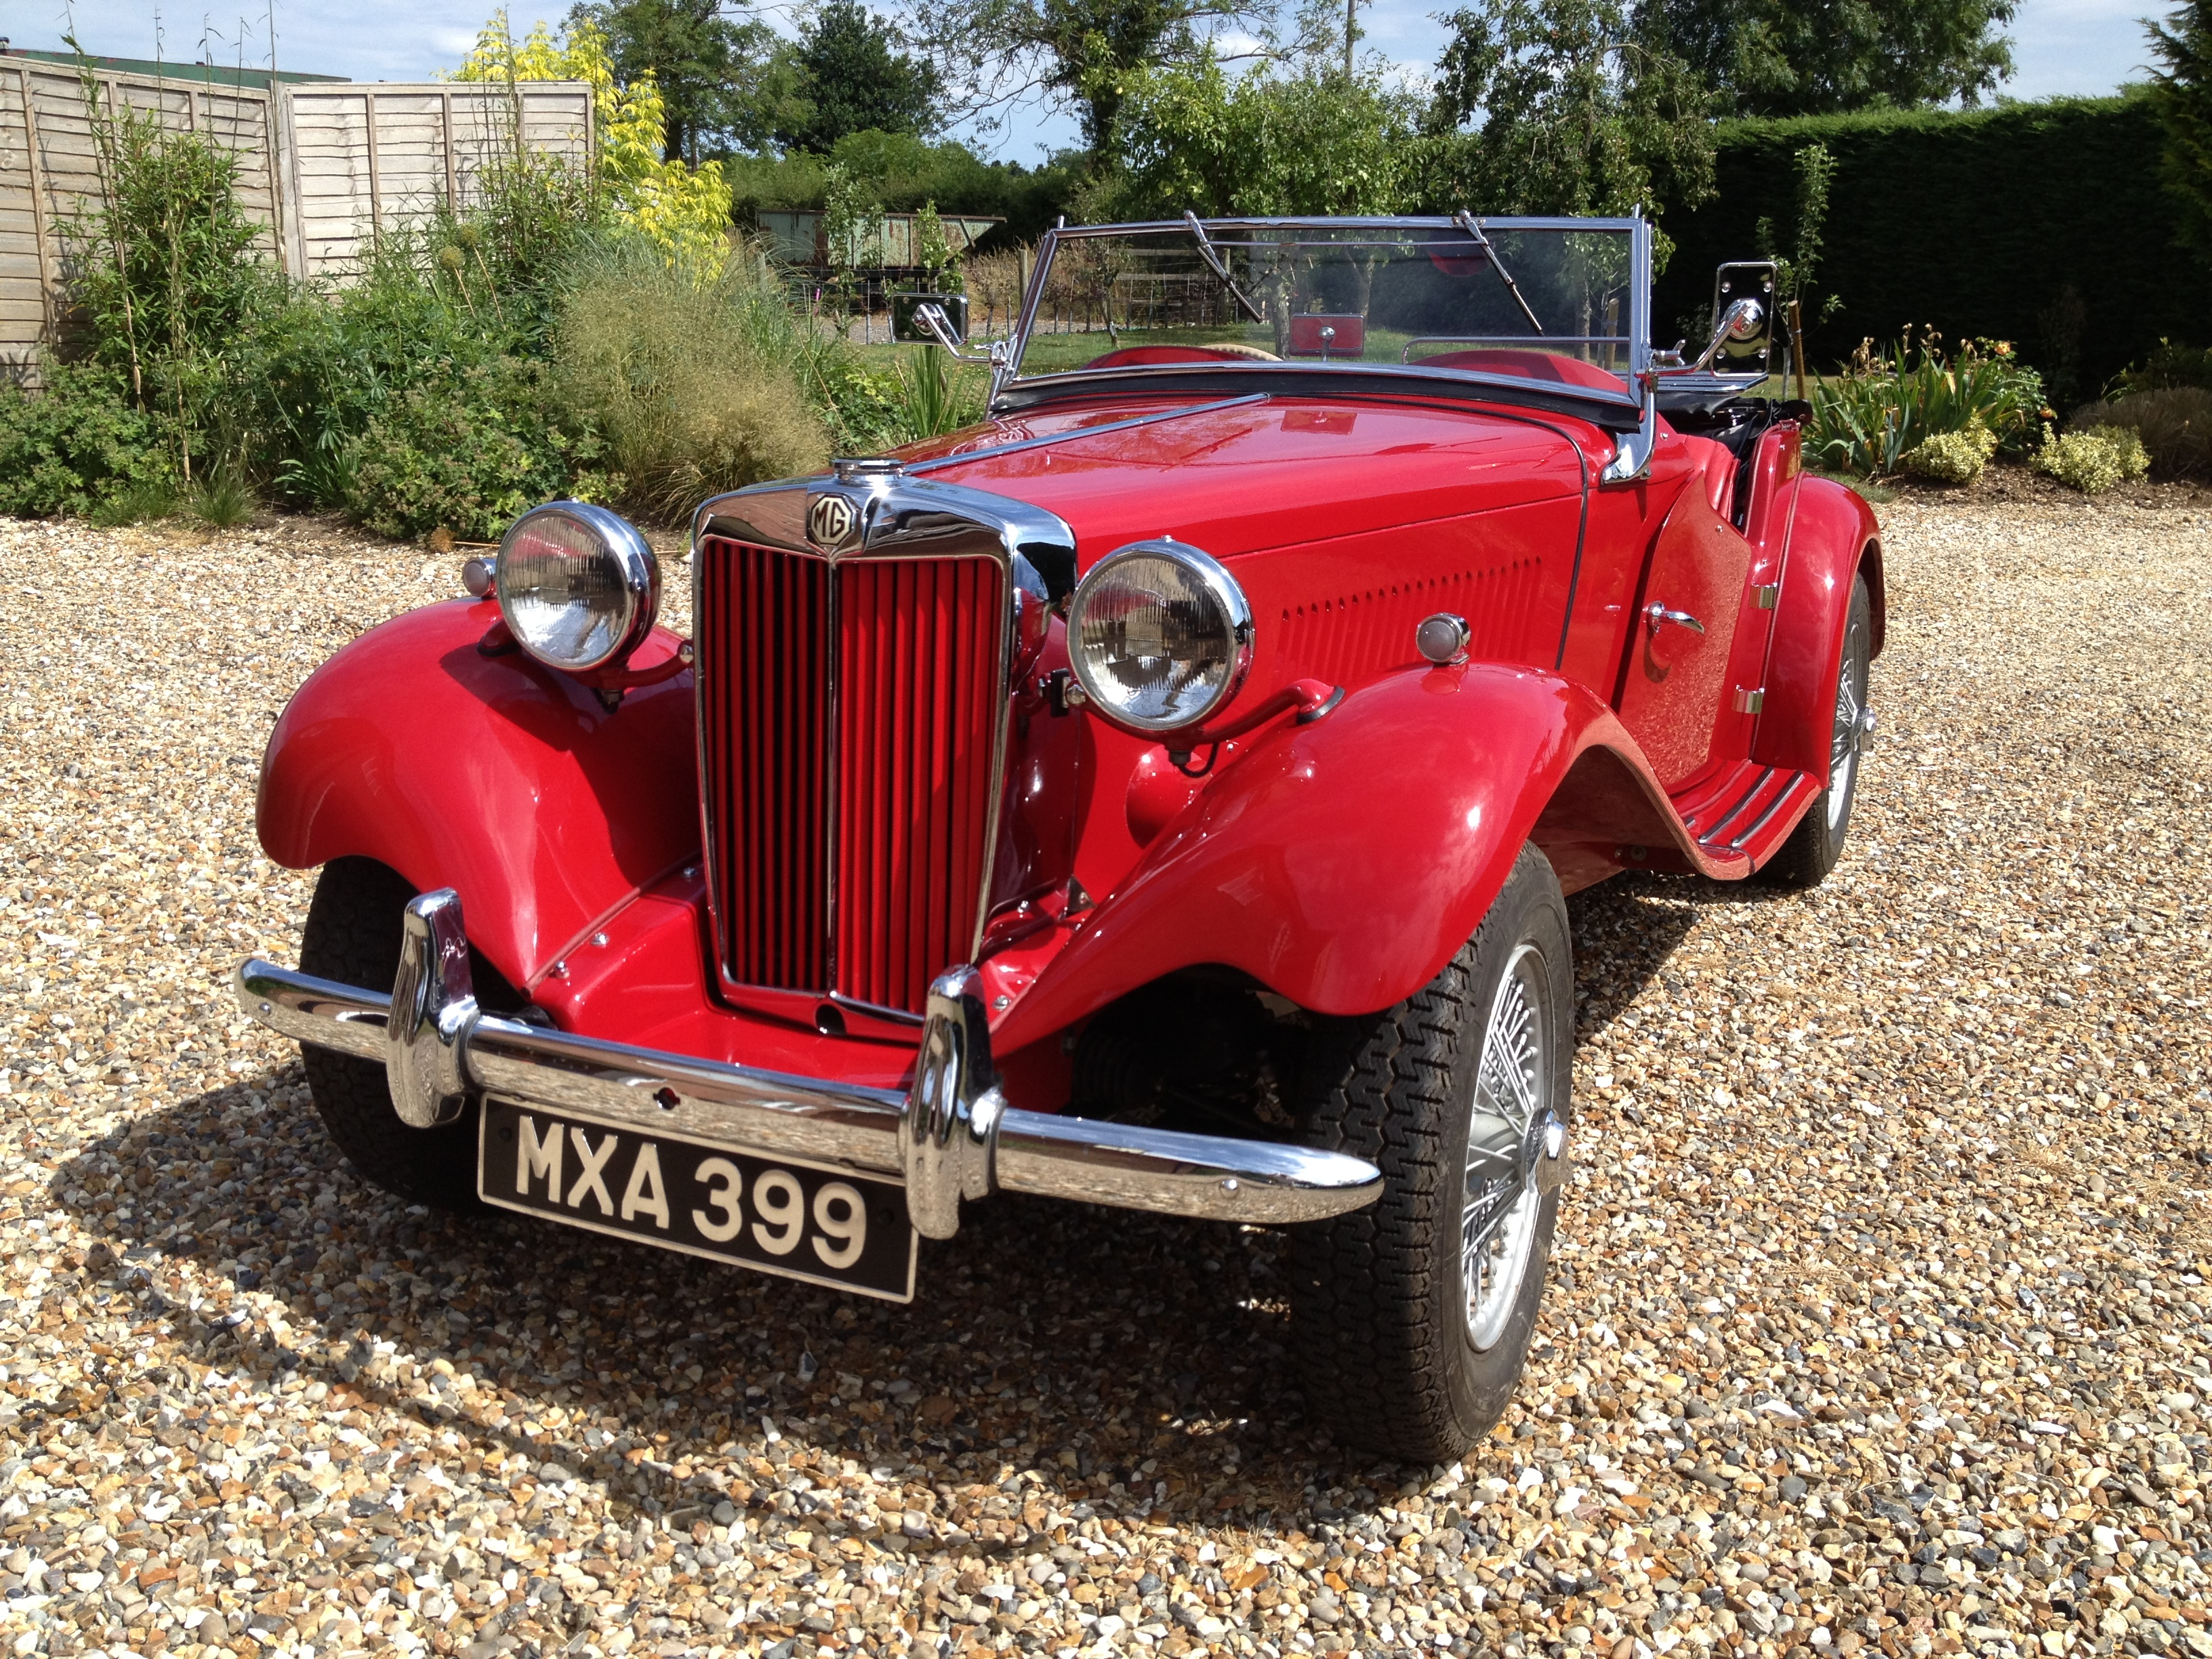 The MG TD after rebuilding by Len Bull